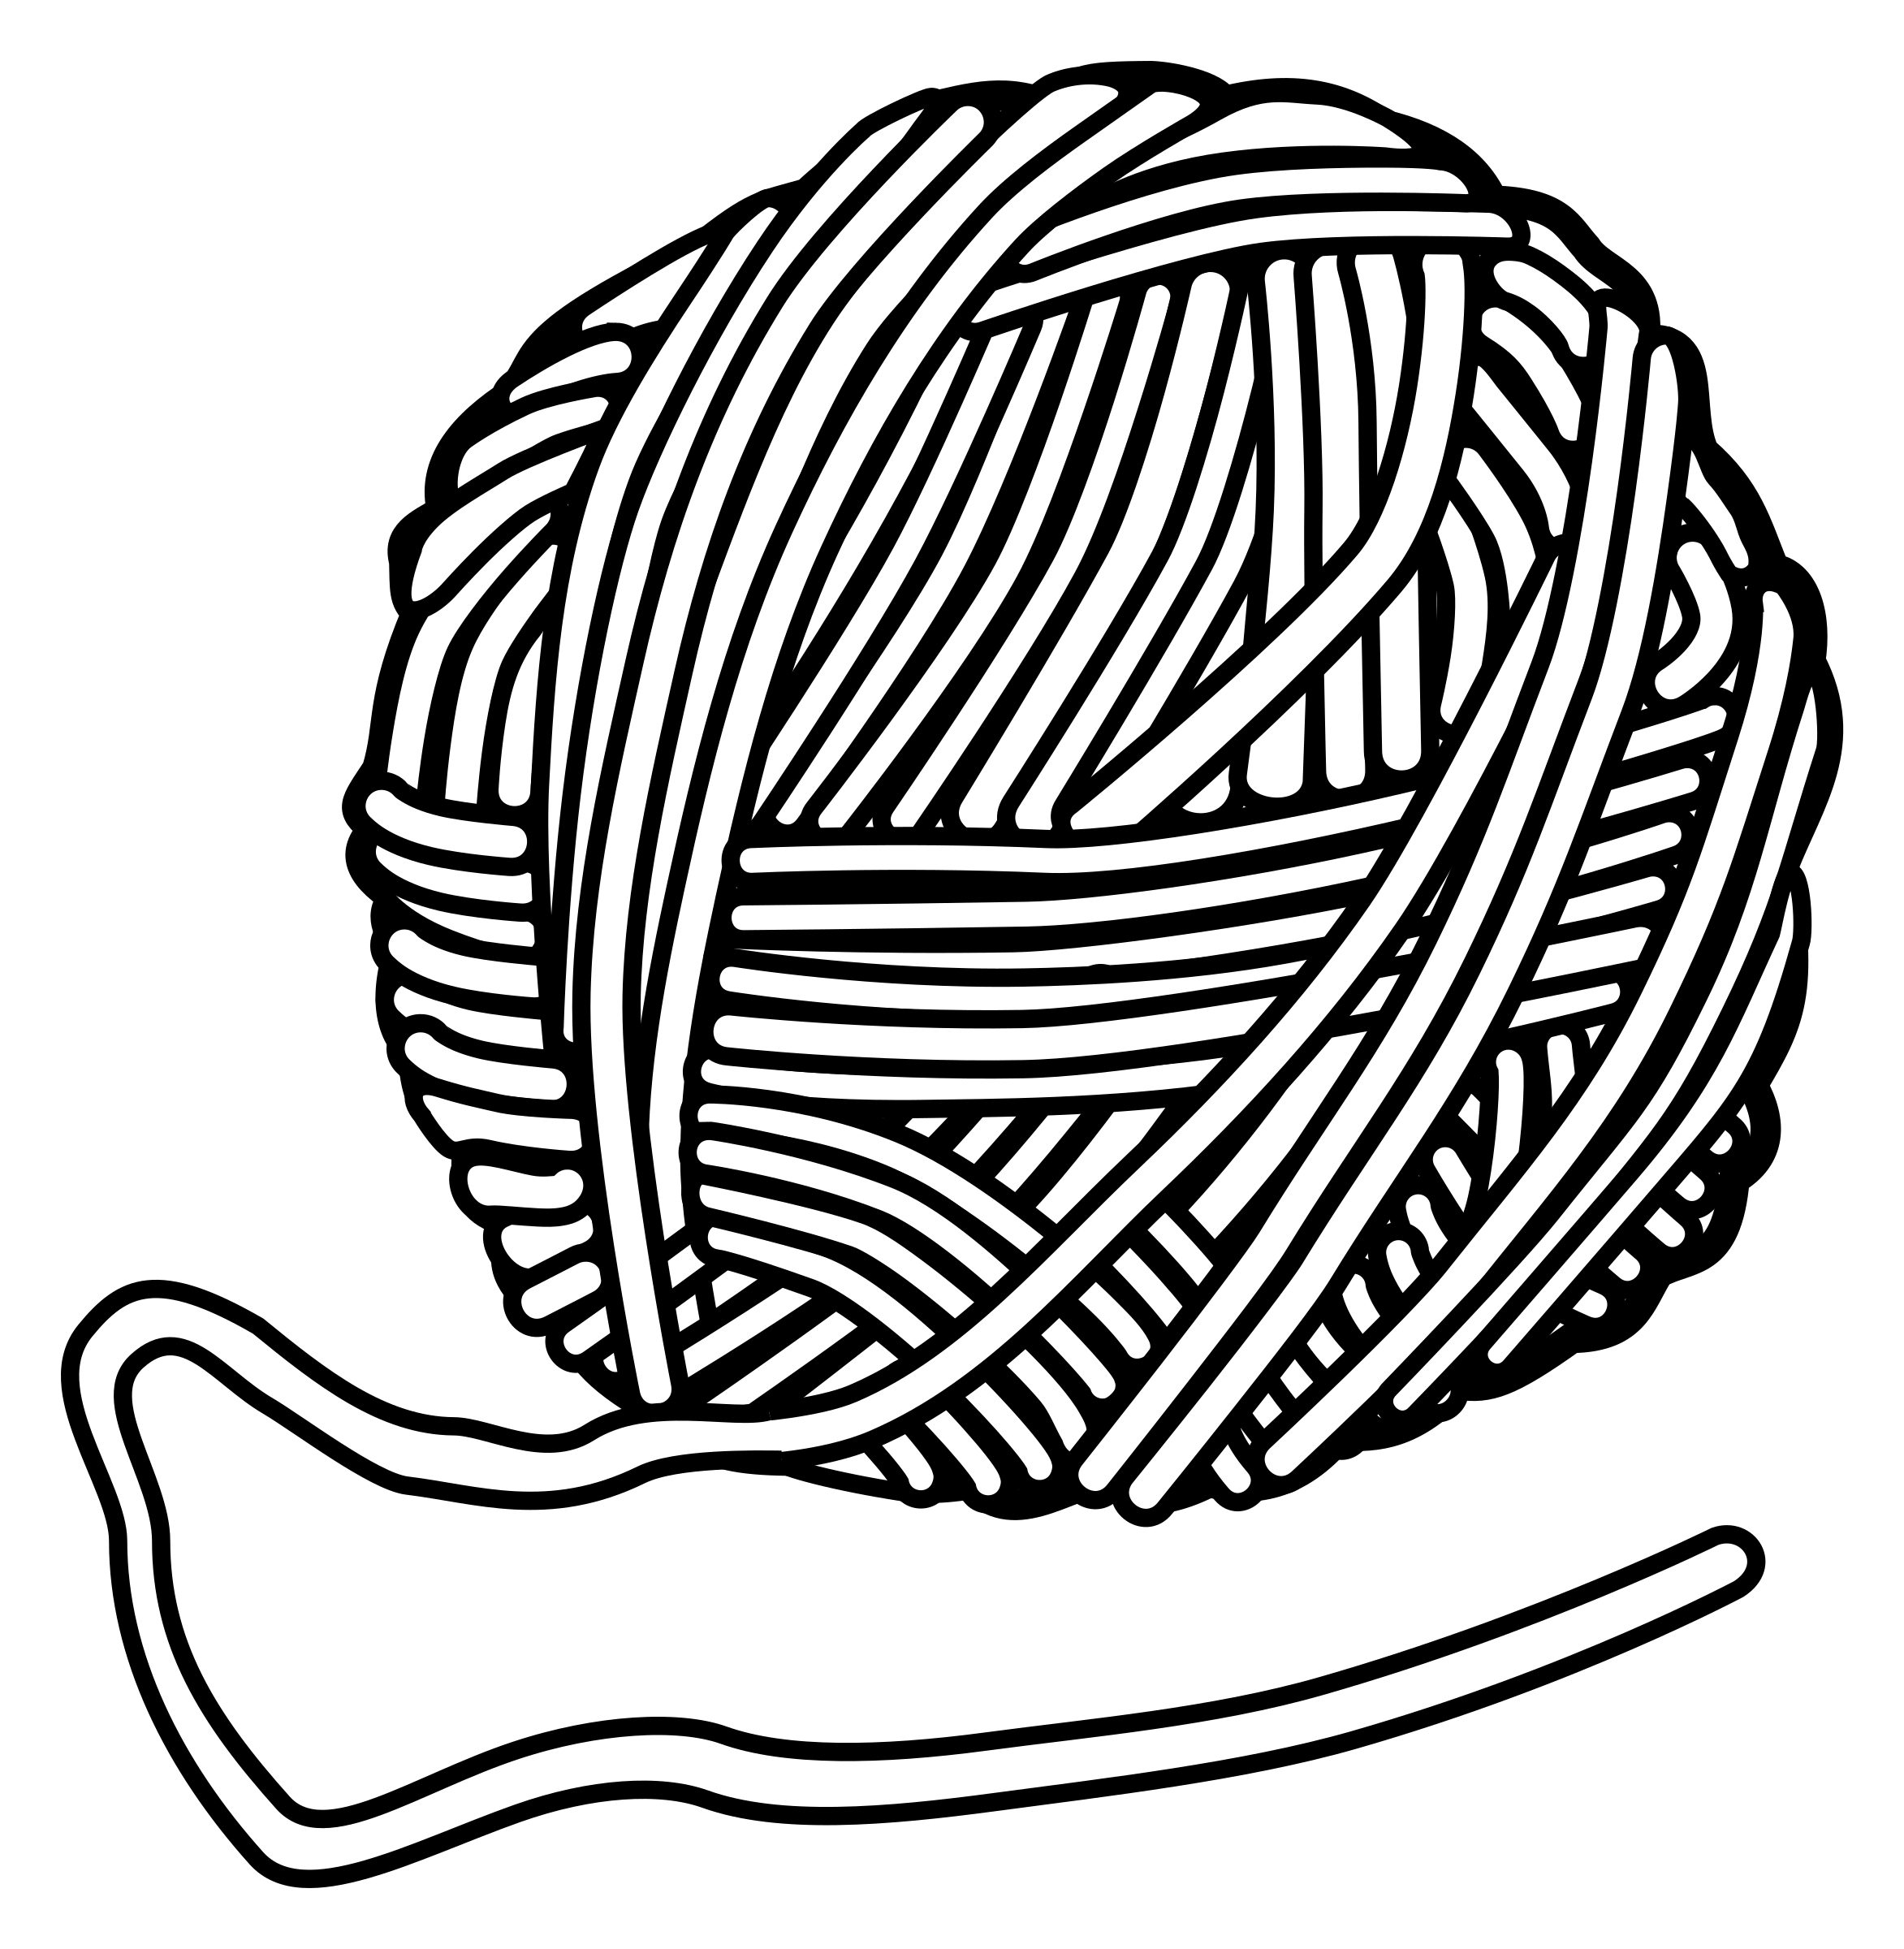 Free Wool Cliparts Download Free Clip Art Free Clip Art On Clipart Library